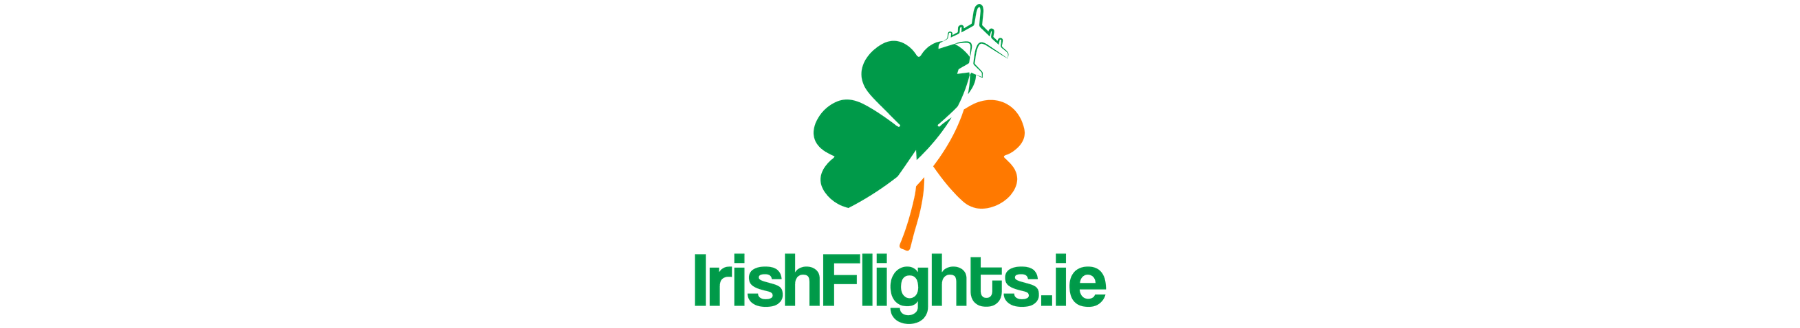 IrishFlights.ie